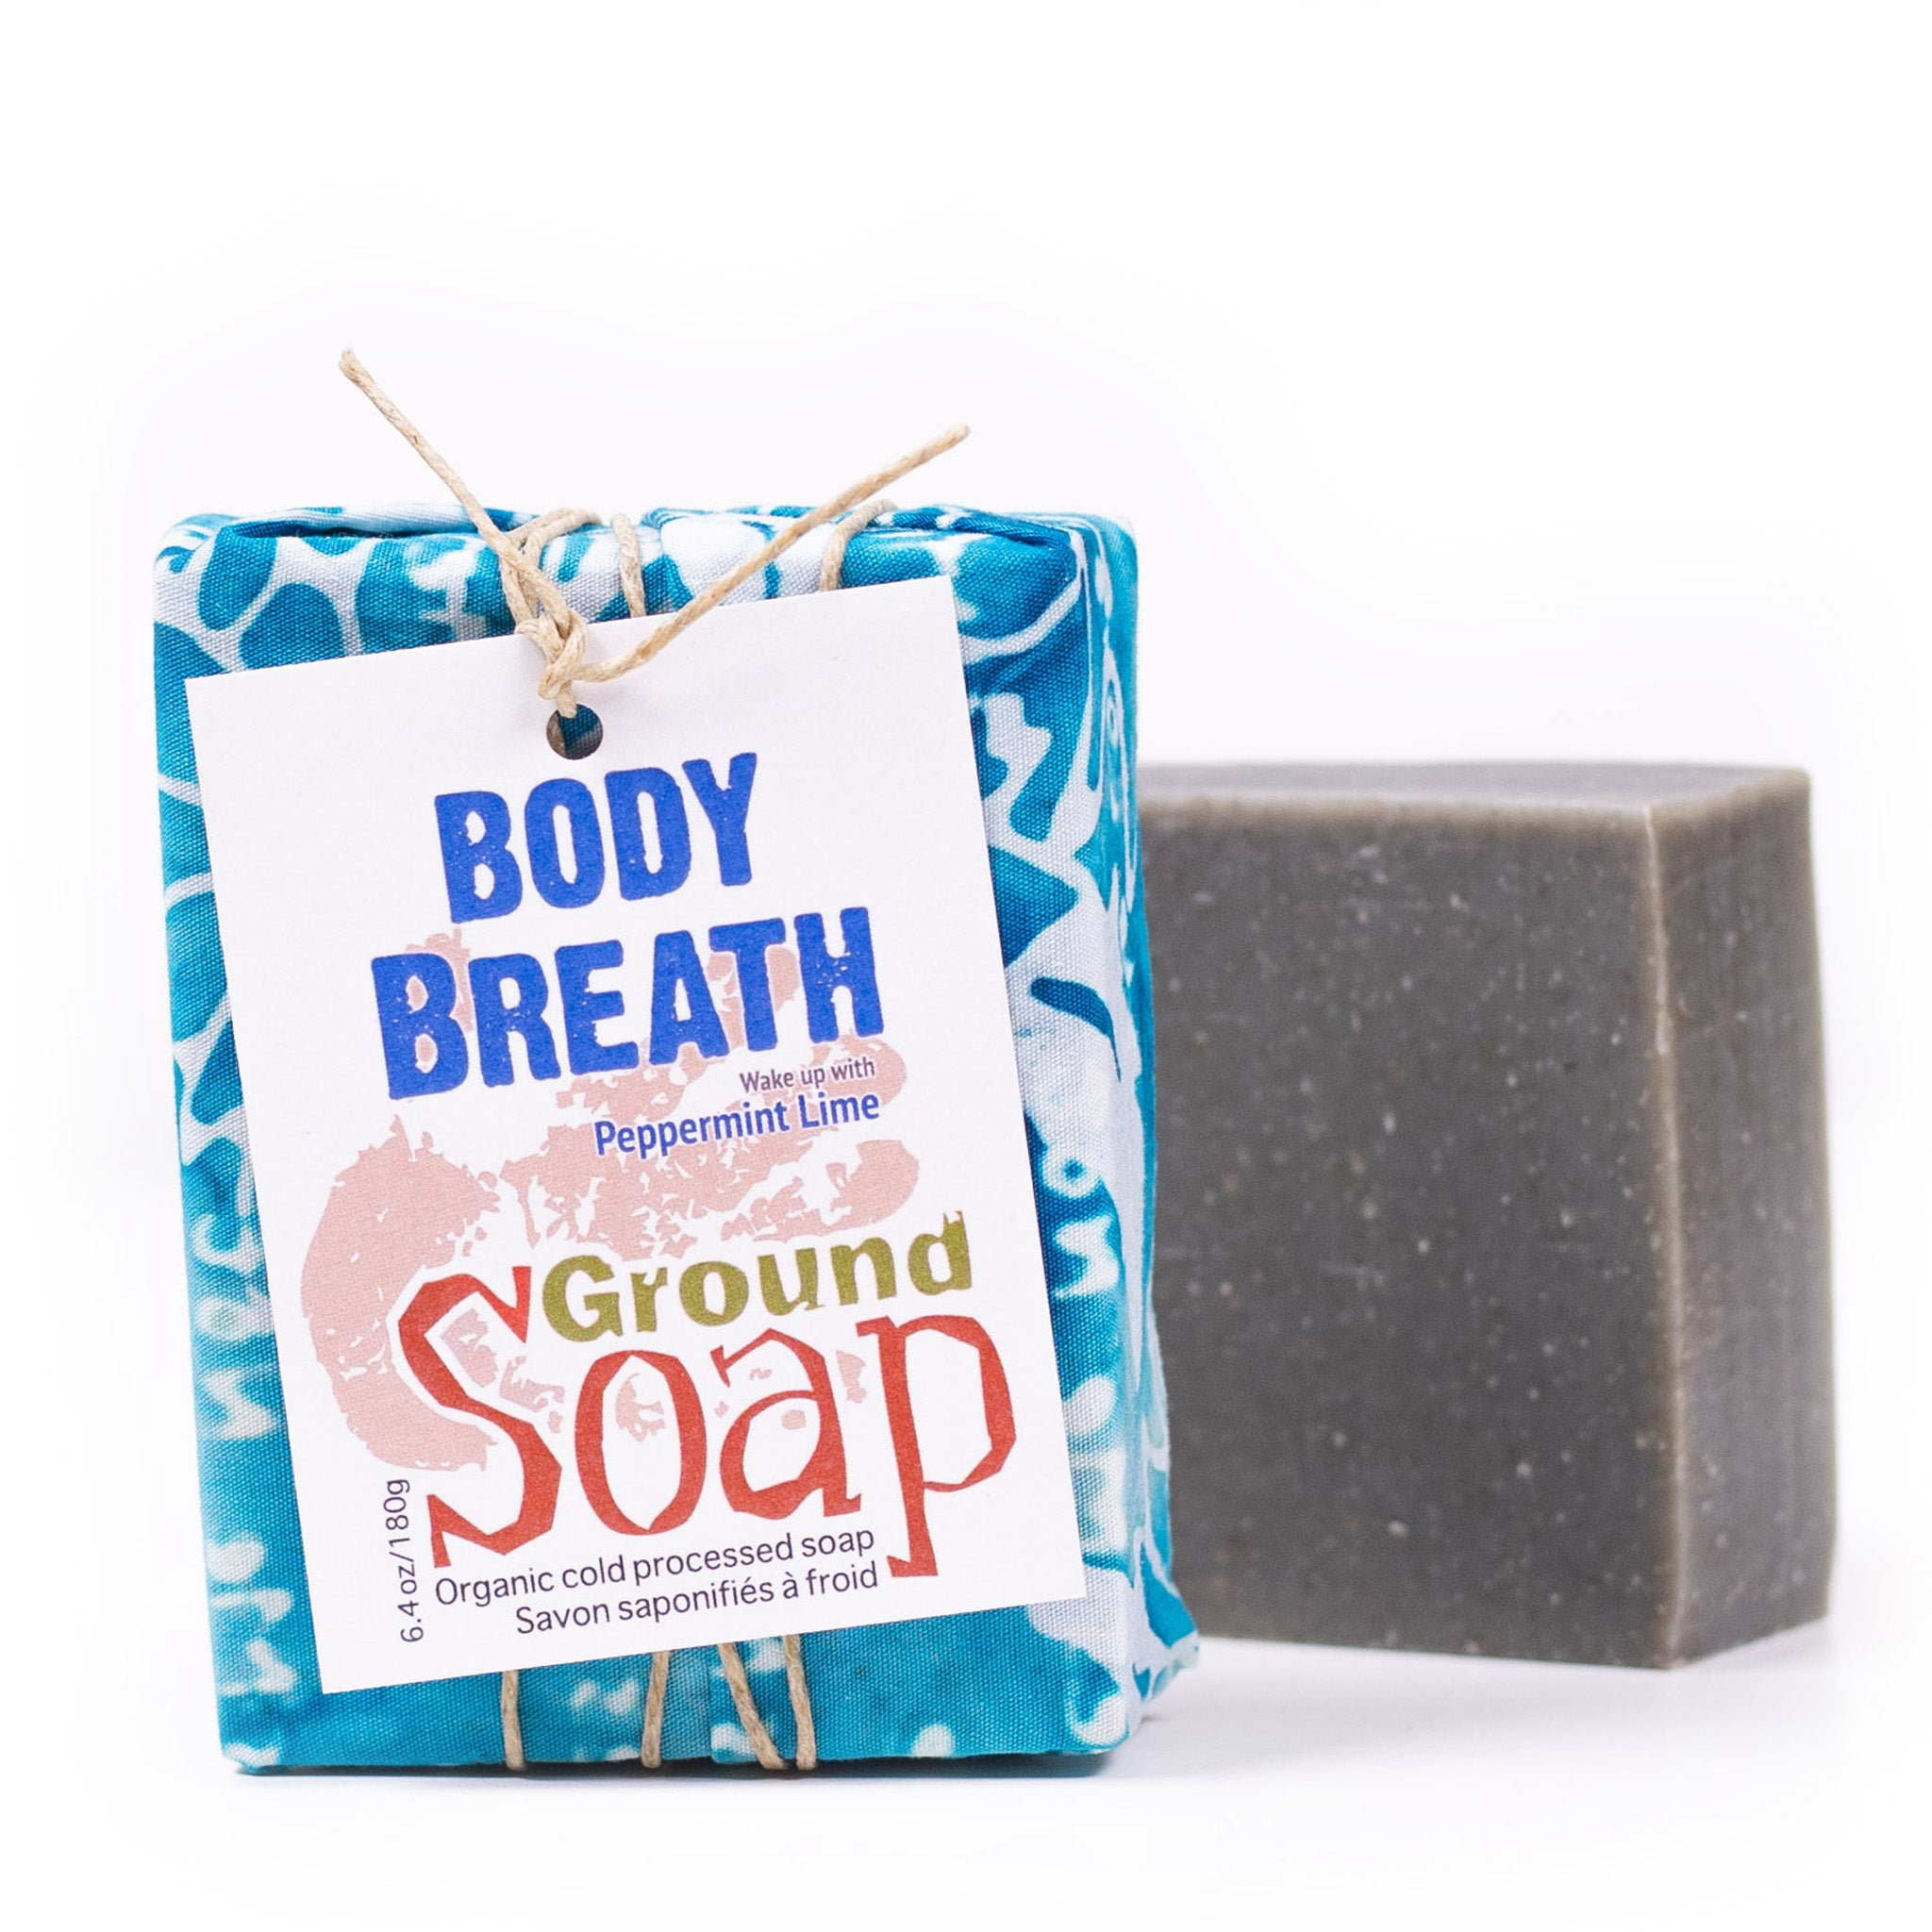 Body Breath Peppermint essential oil organic bar soap from ground Soap.